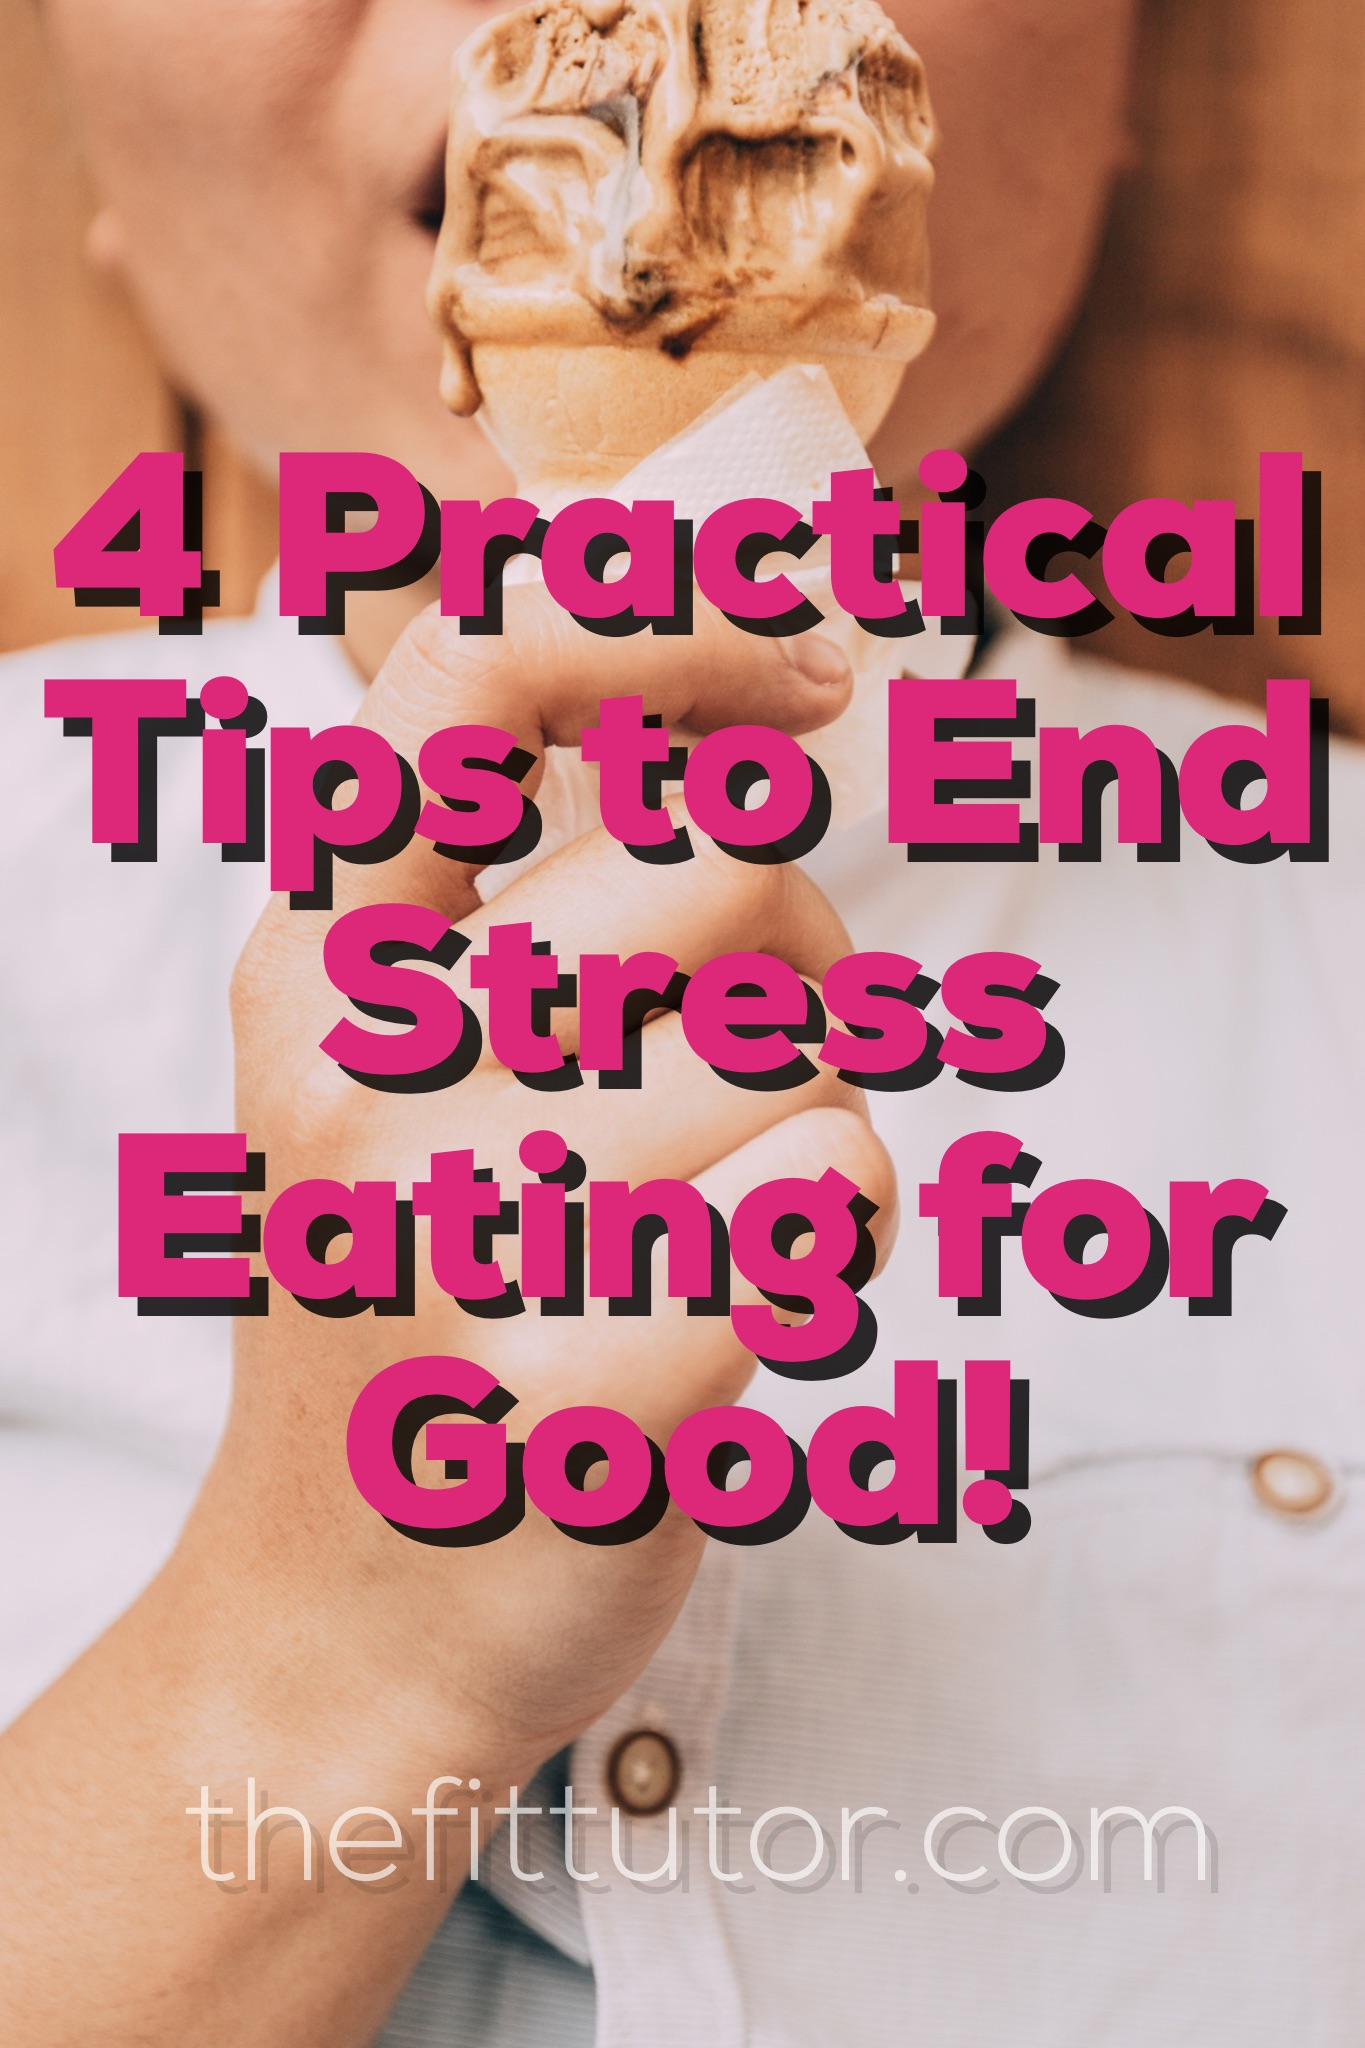 4 practical tips for fighting stress eating that you can start NOW